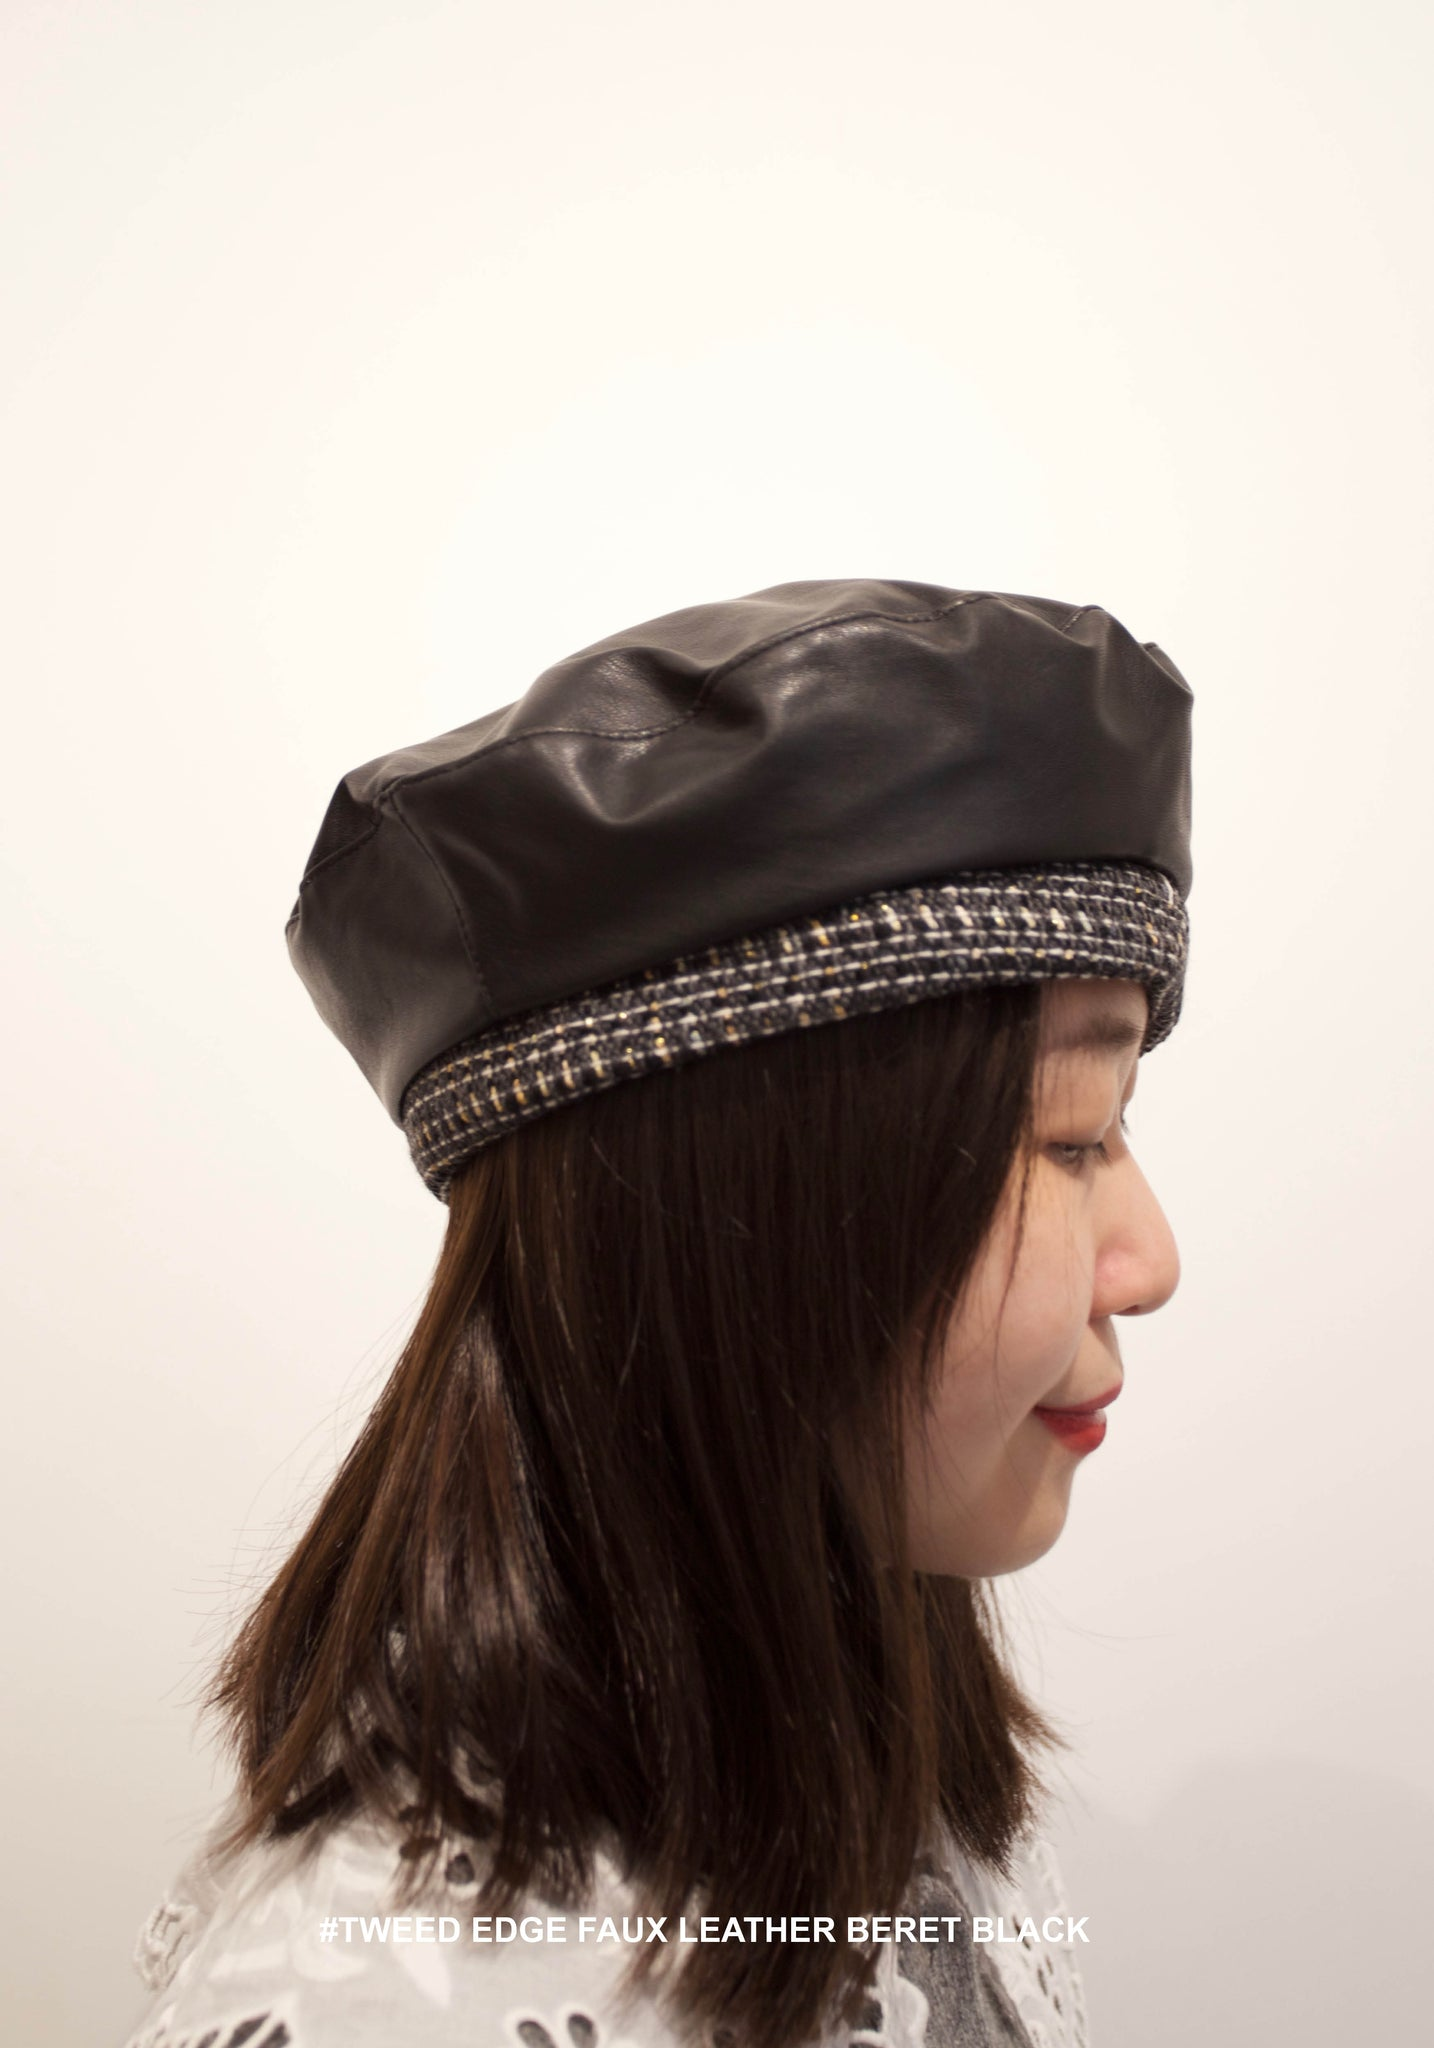 Tweed Edge Faux Leather Beret Black - whoami